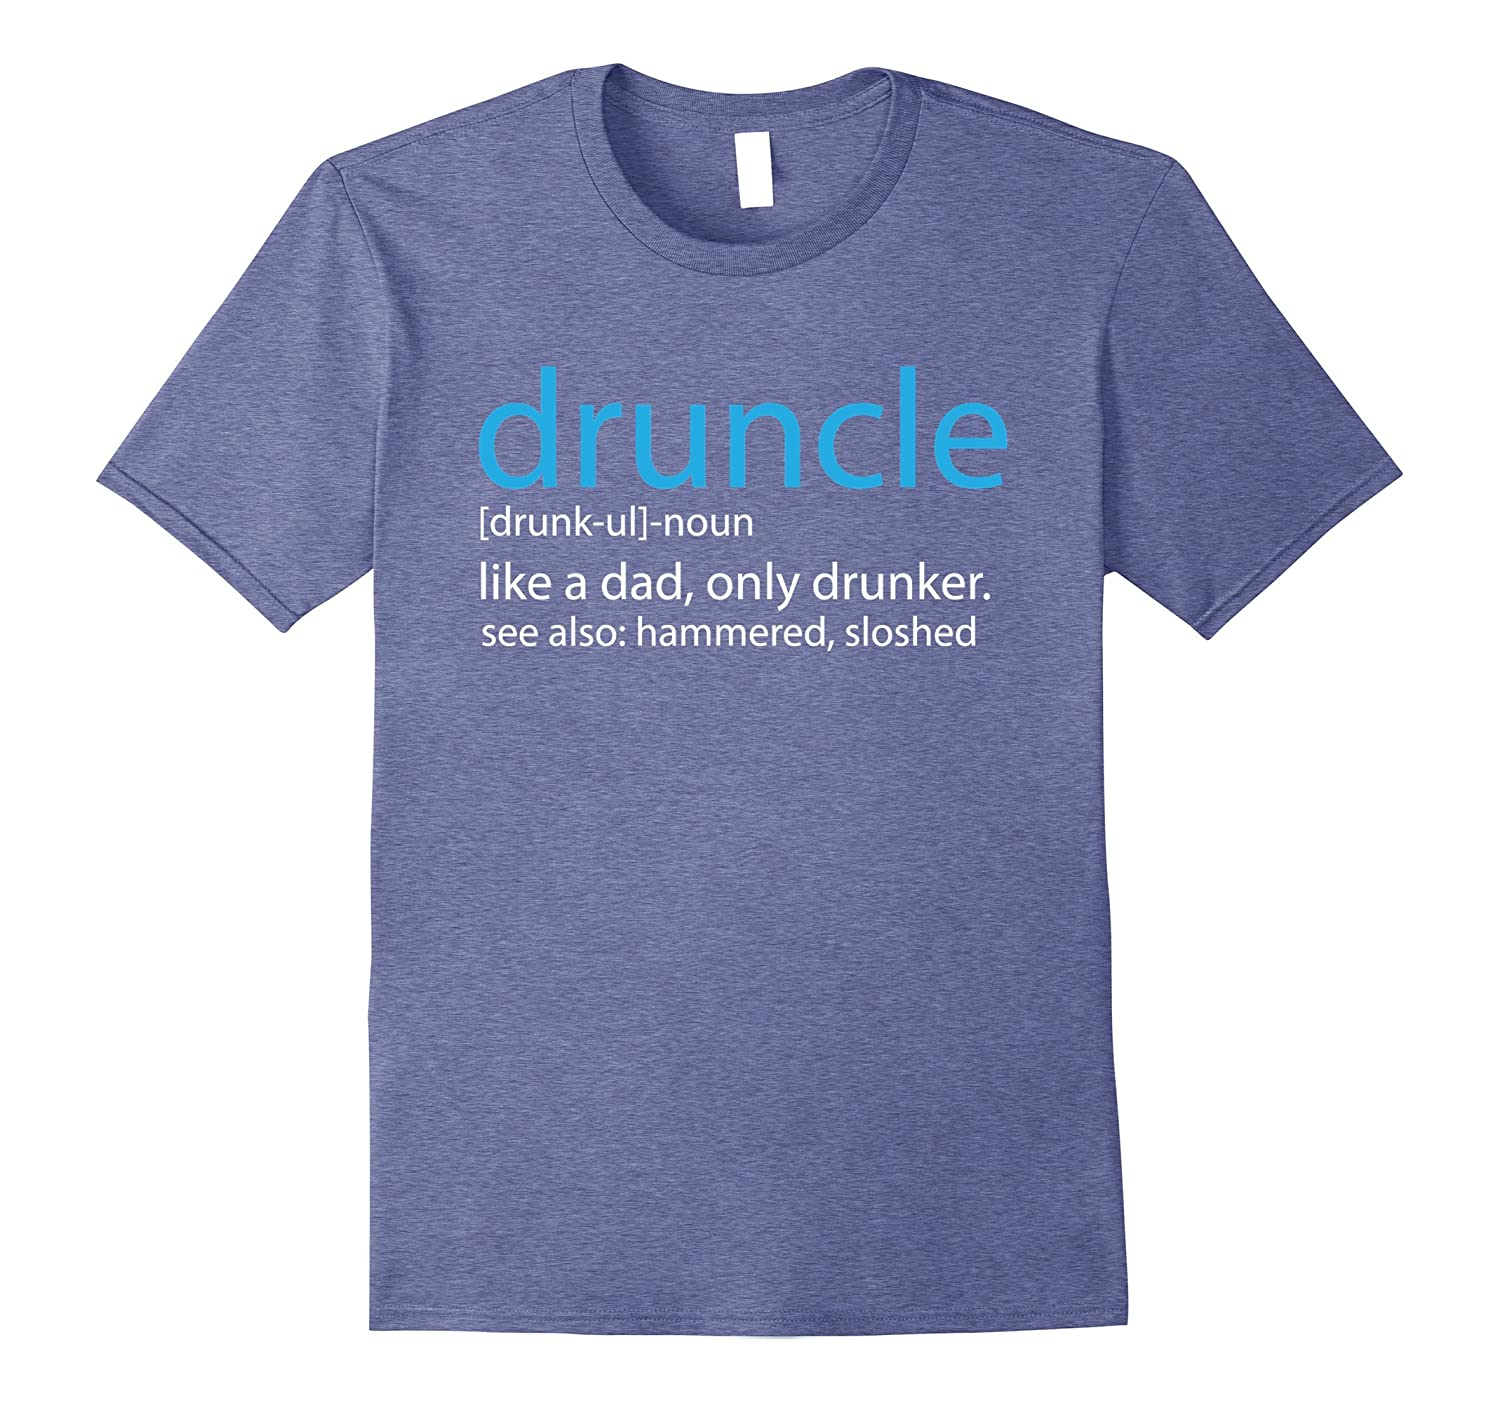 4b54daa31 Amazon.com: Funcle Druncle Definition Funny Shirt Gift For Uncle Tee:  Clothing